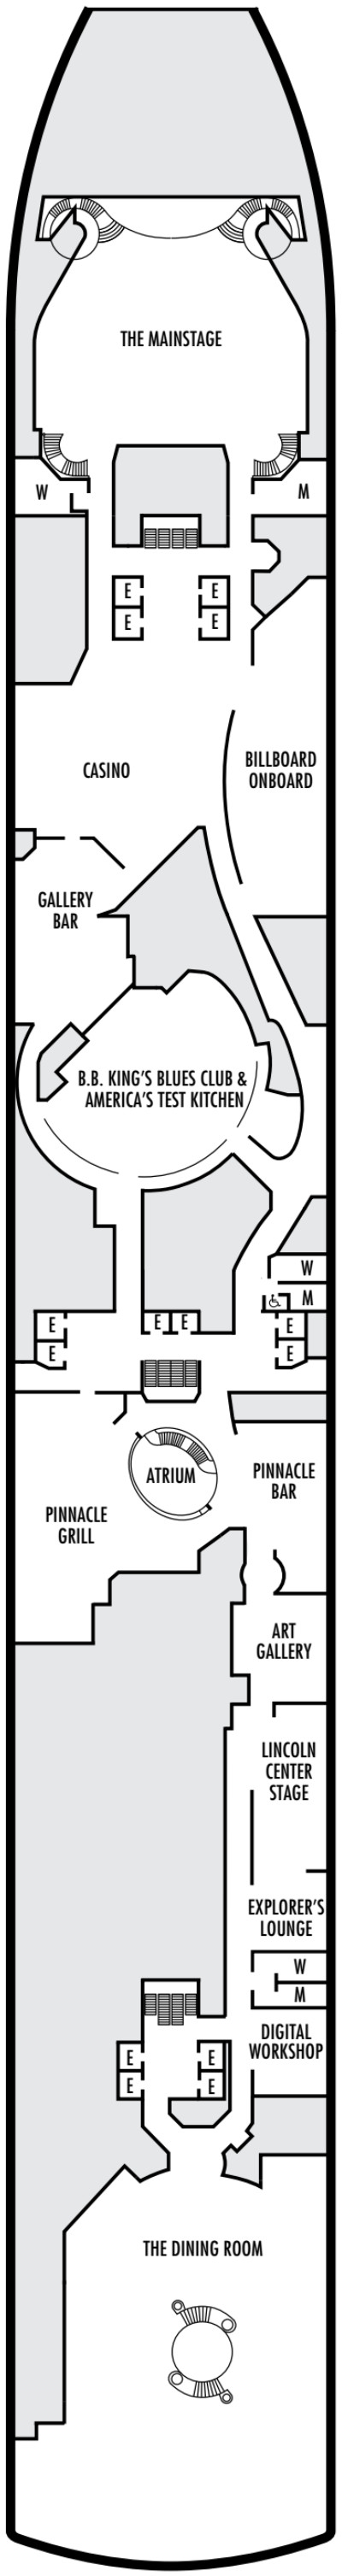 Eurodam Deck 2 - Lower Promenade layout